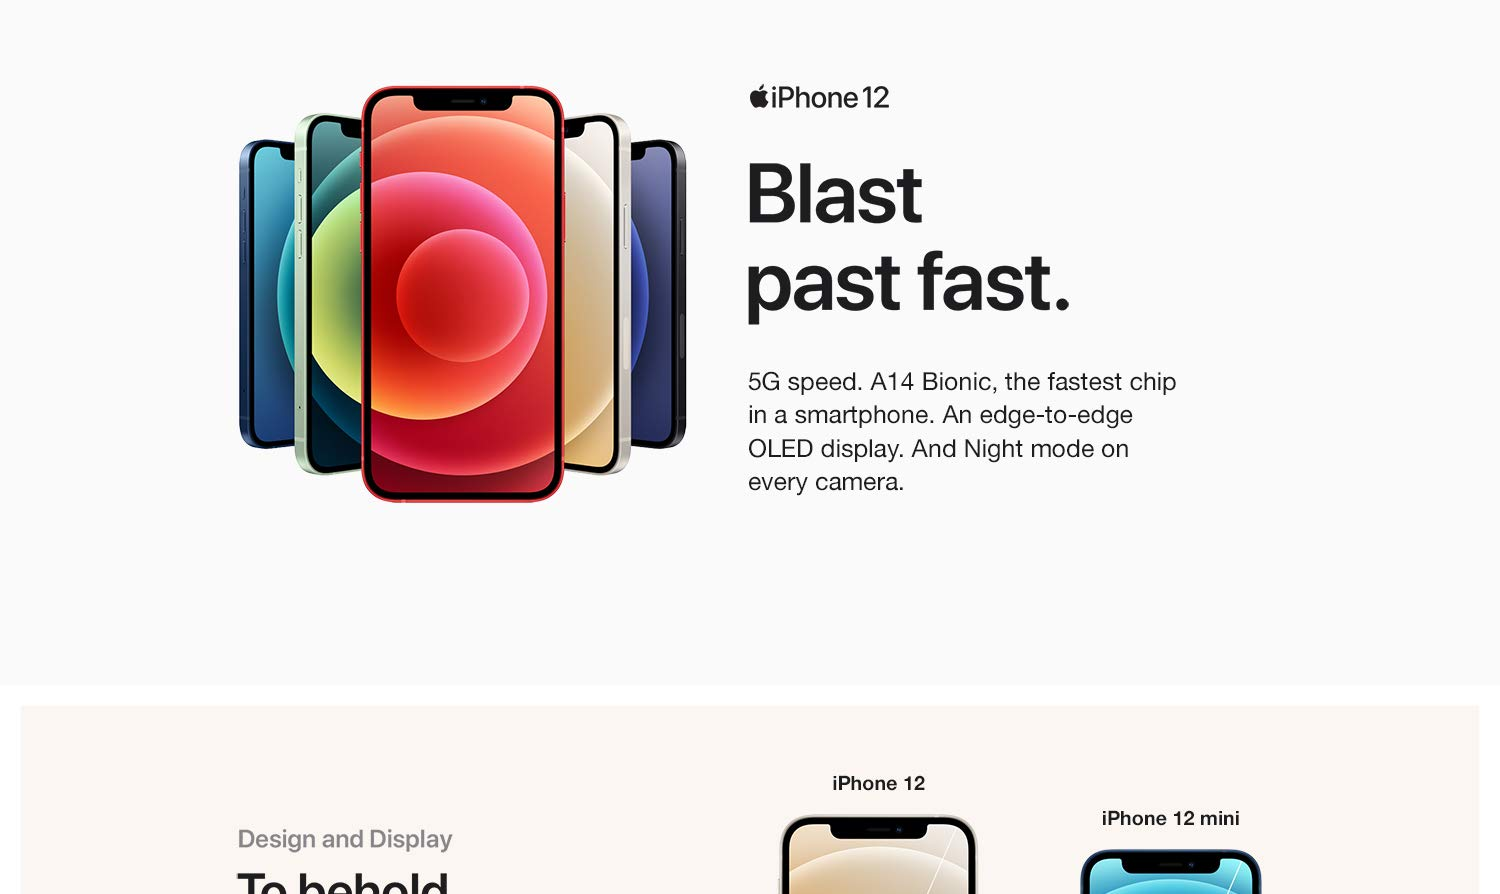 iPhone 12 - 5G speed. A14 Bionic chip, the fastest chip in a smartphone.